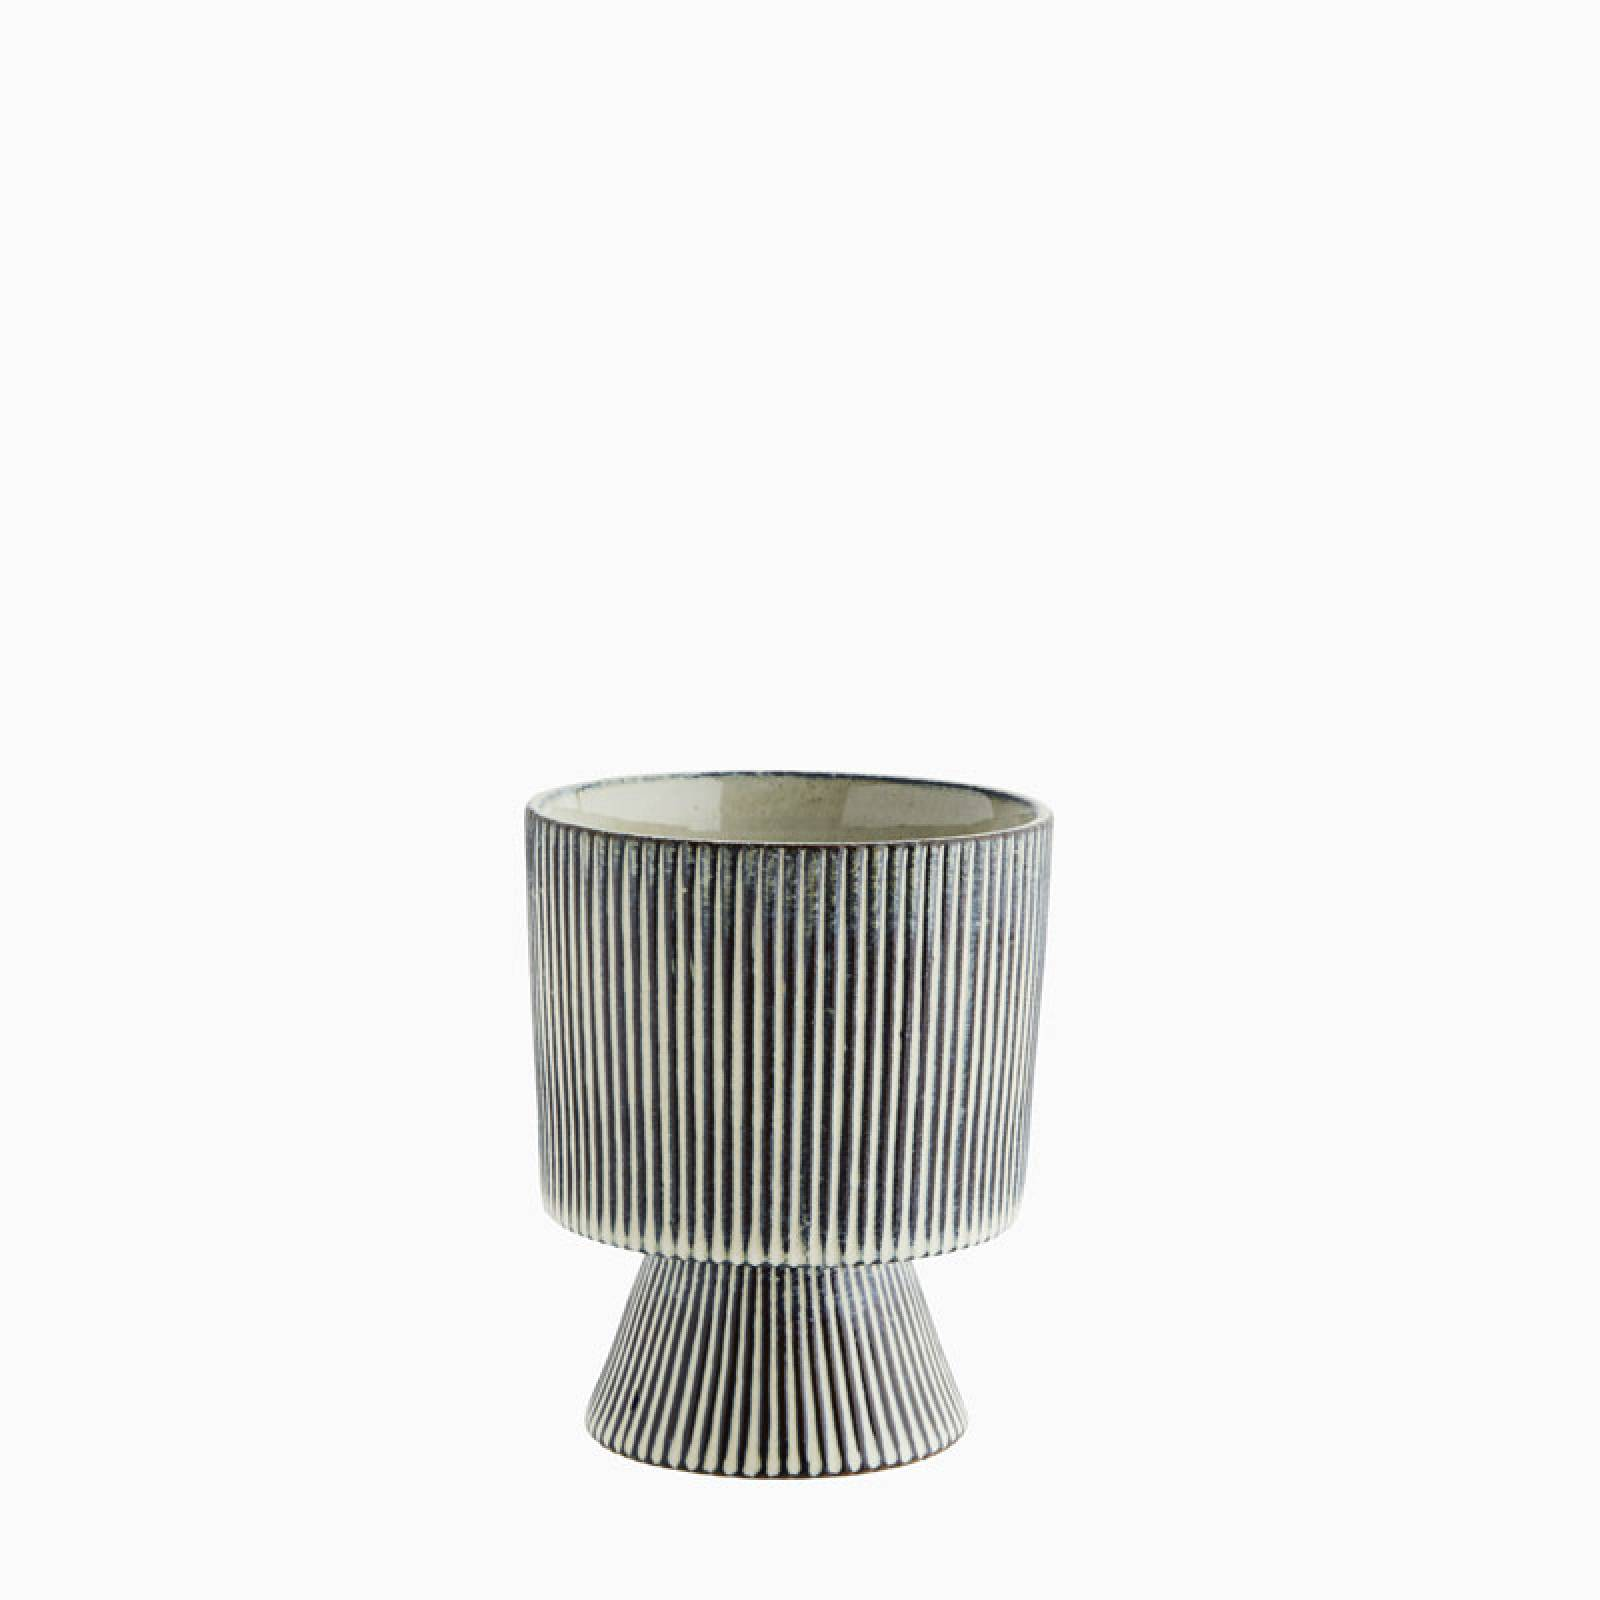 Blue And White Striped Flowerpot On Plinth thumbnails